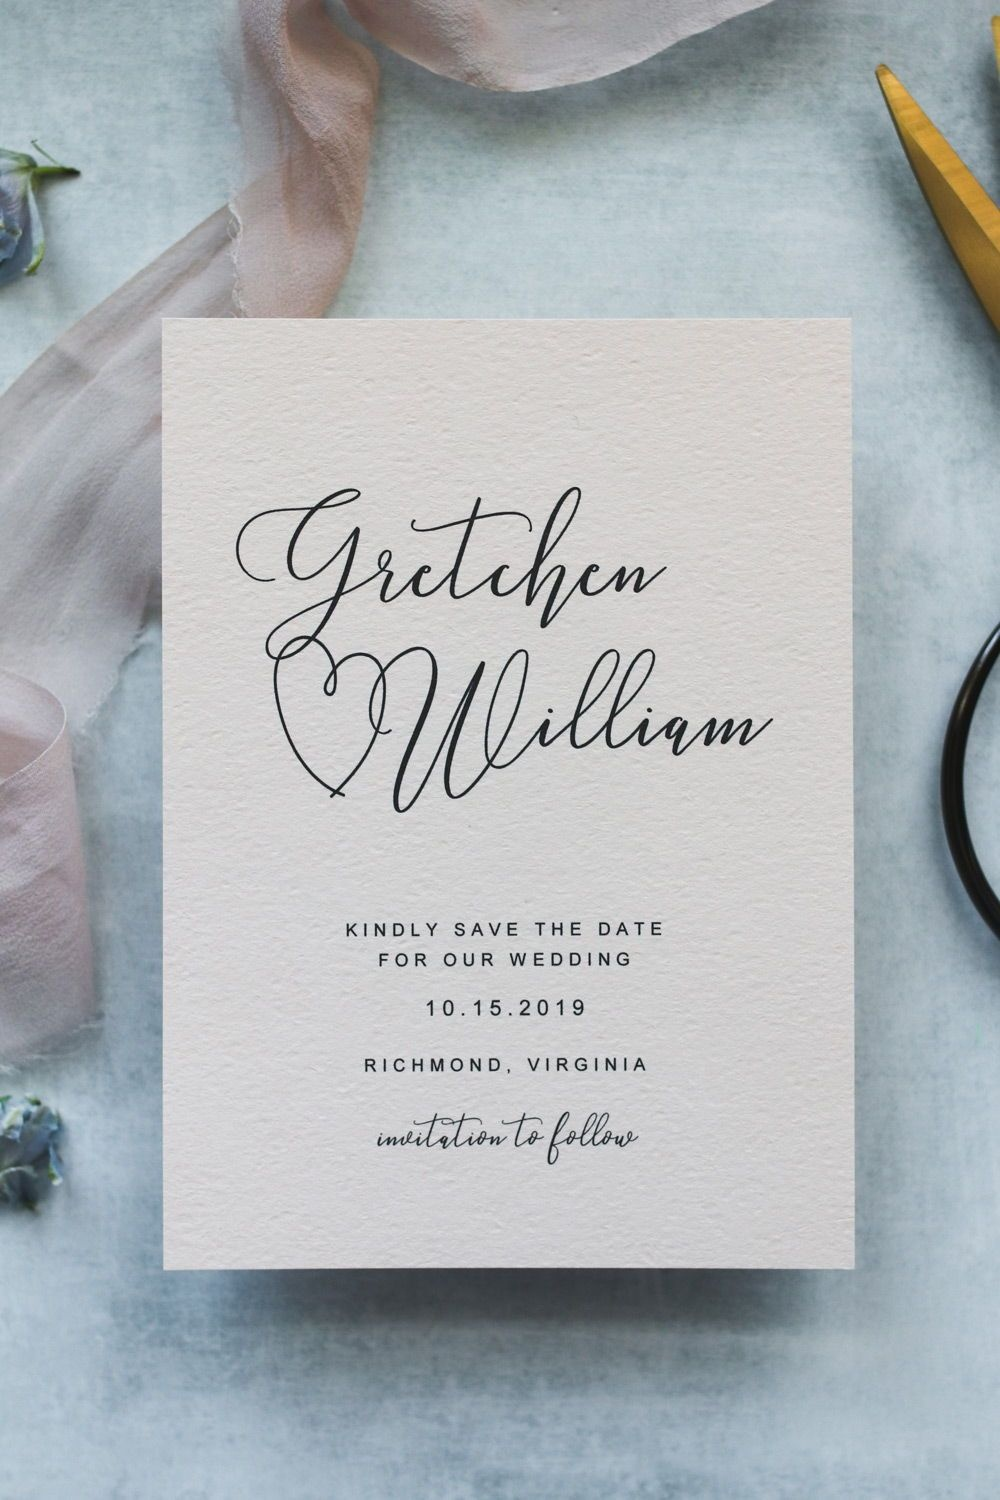 Free Save The Date Templates | Save The Date Ideas | Save The Date - Free Printable Save The Date